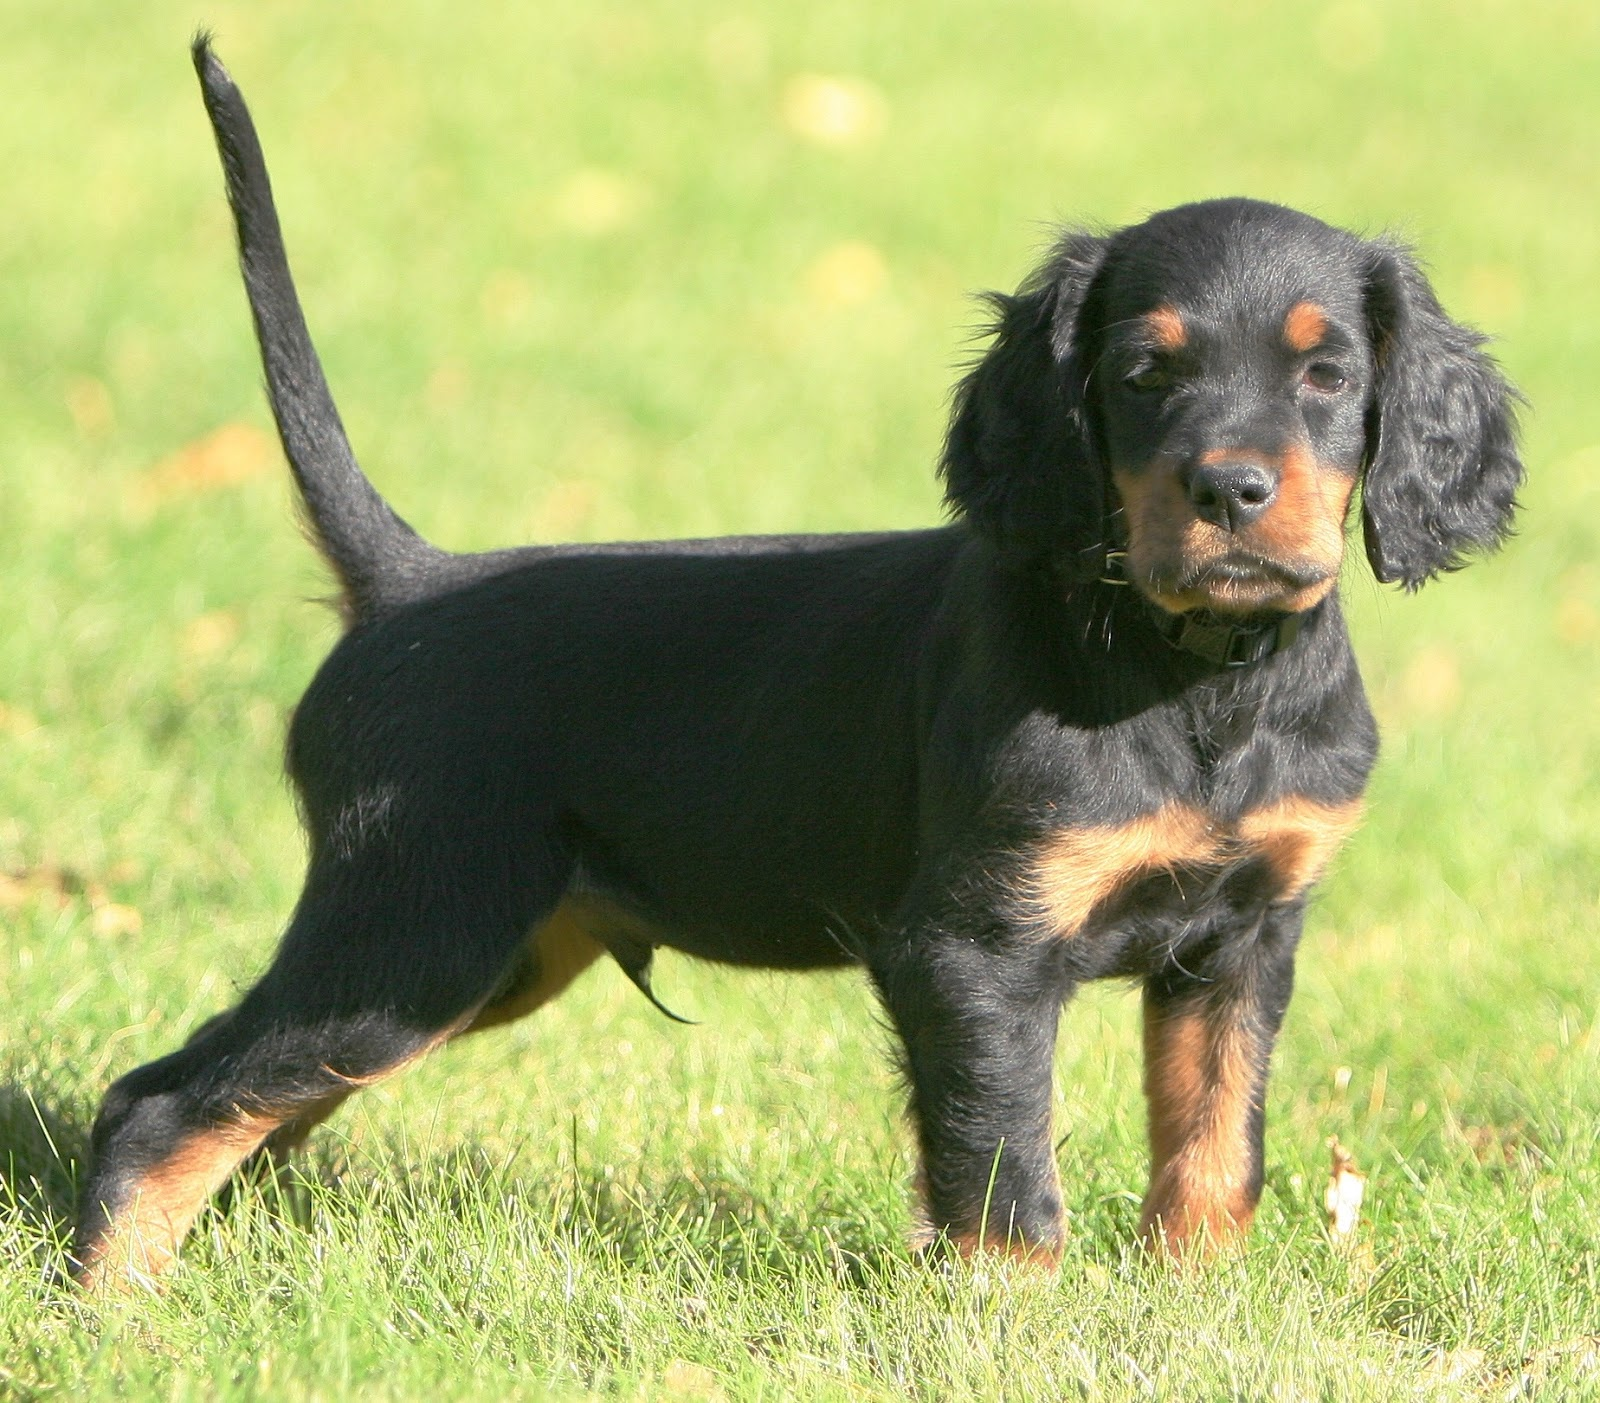 Communication on this topic: How to Identify a Gordon Setter, how-to-identify-a-gordon-setter/